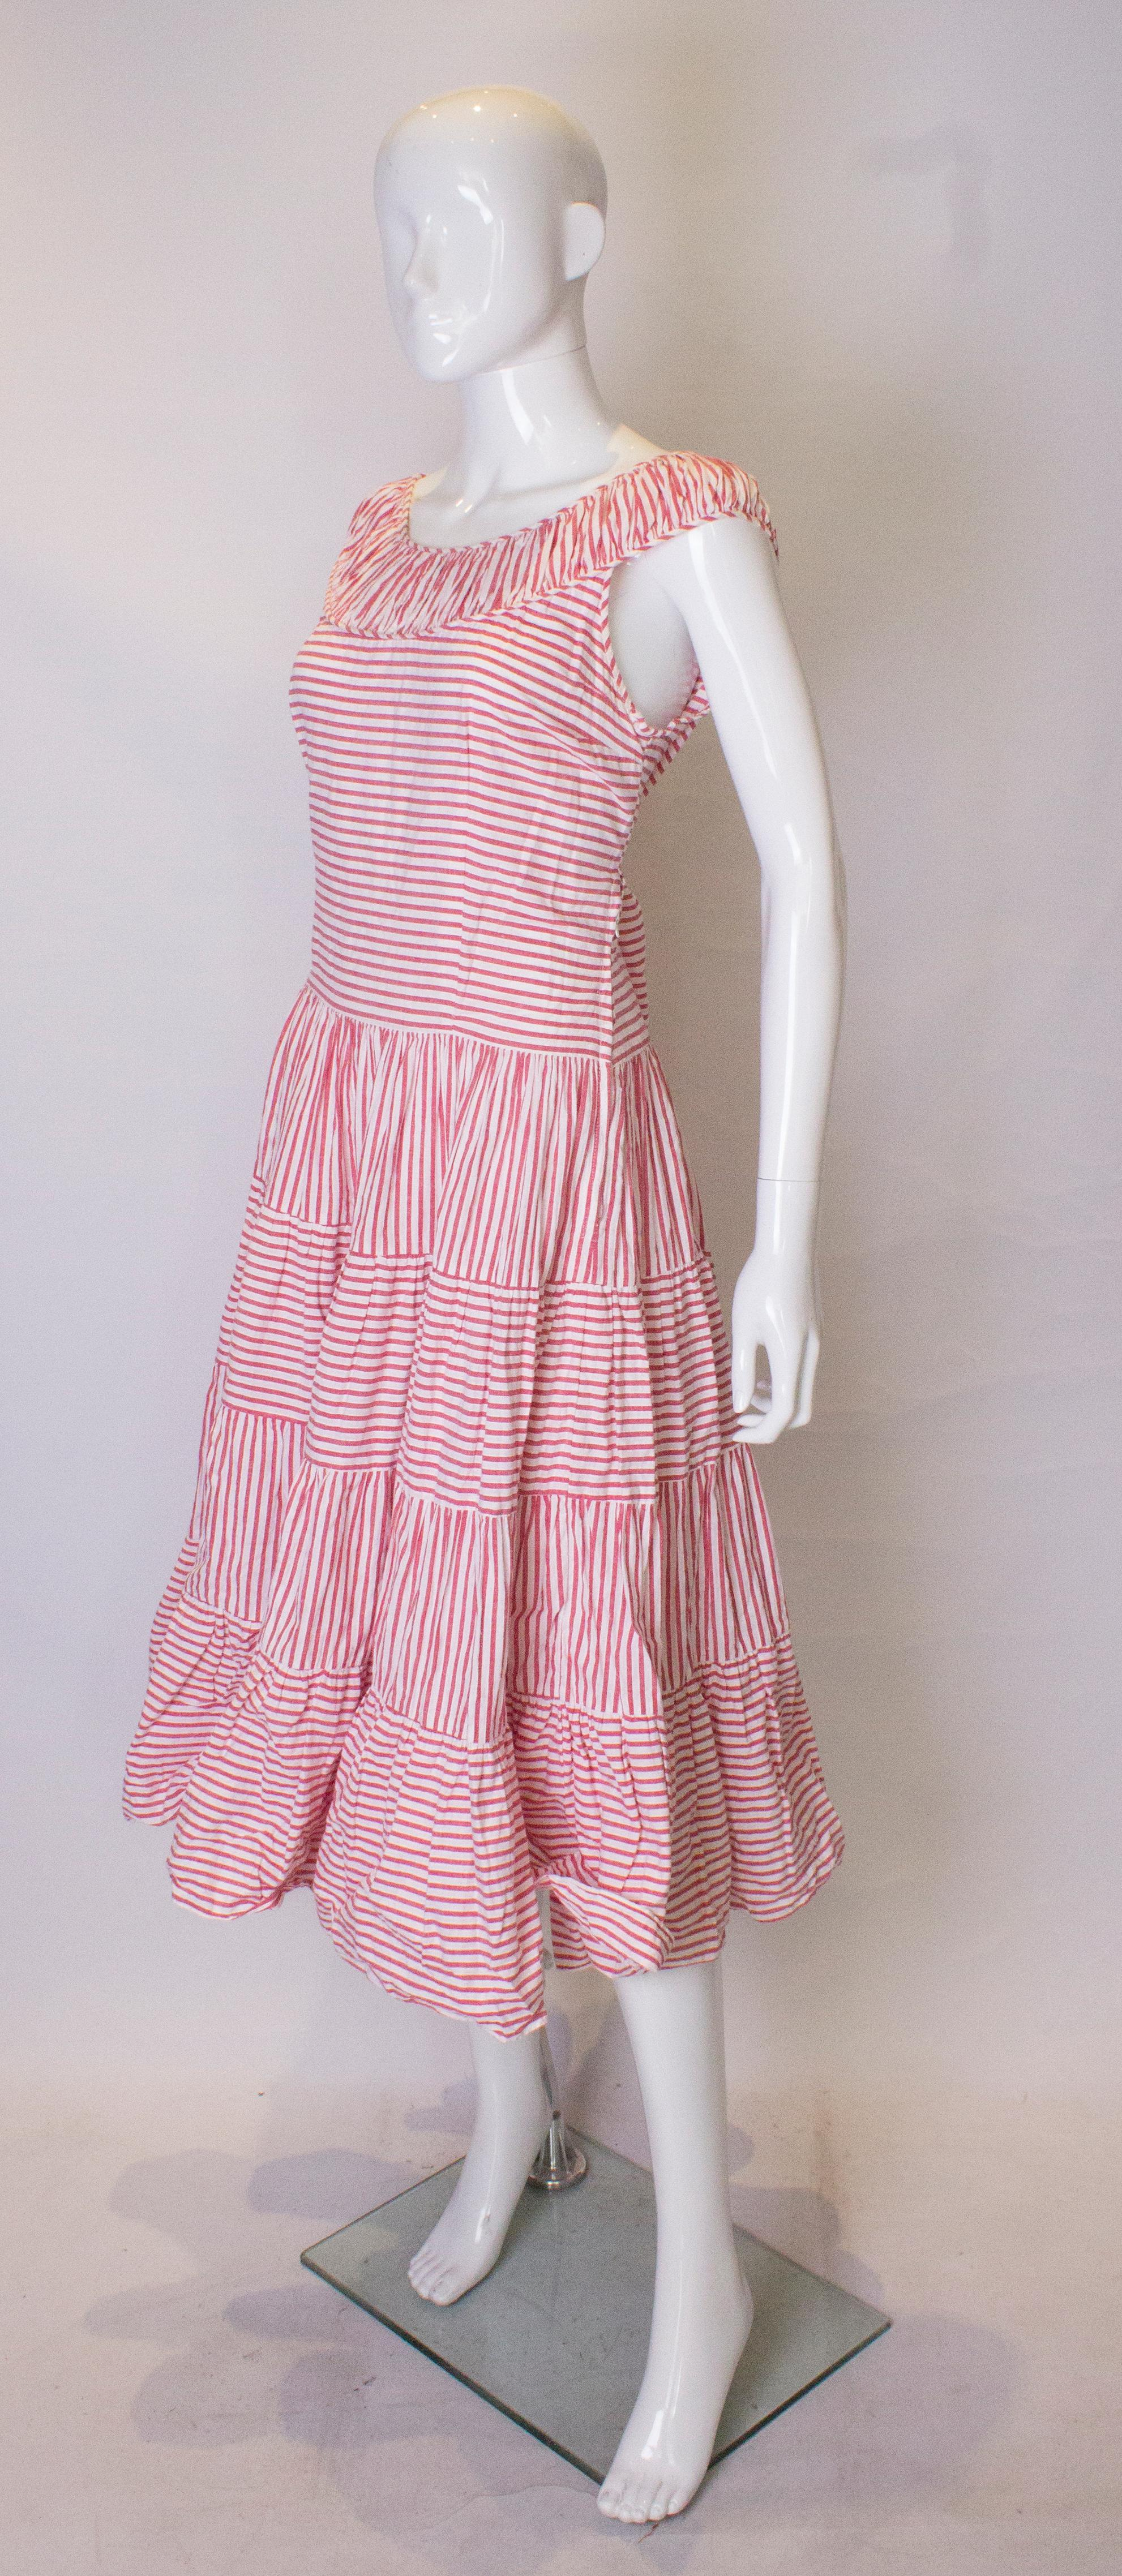 4567e2f94 Vintage 1950s Red and White Cotton Summer Dress For Sale at 1stdibs